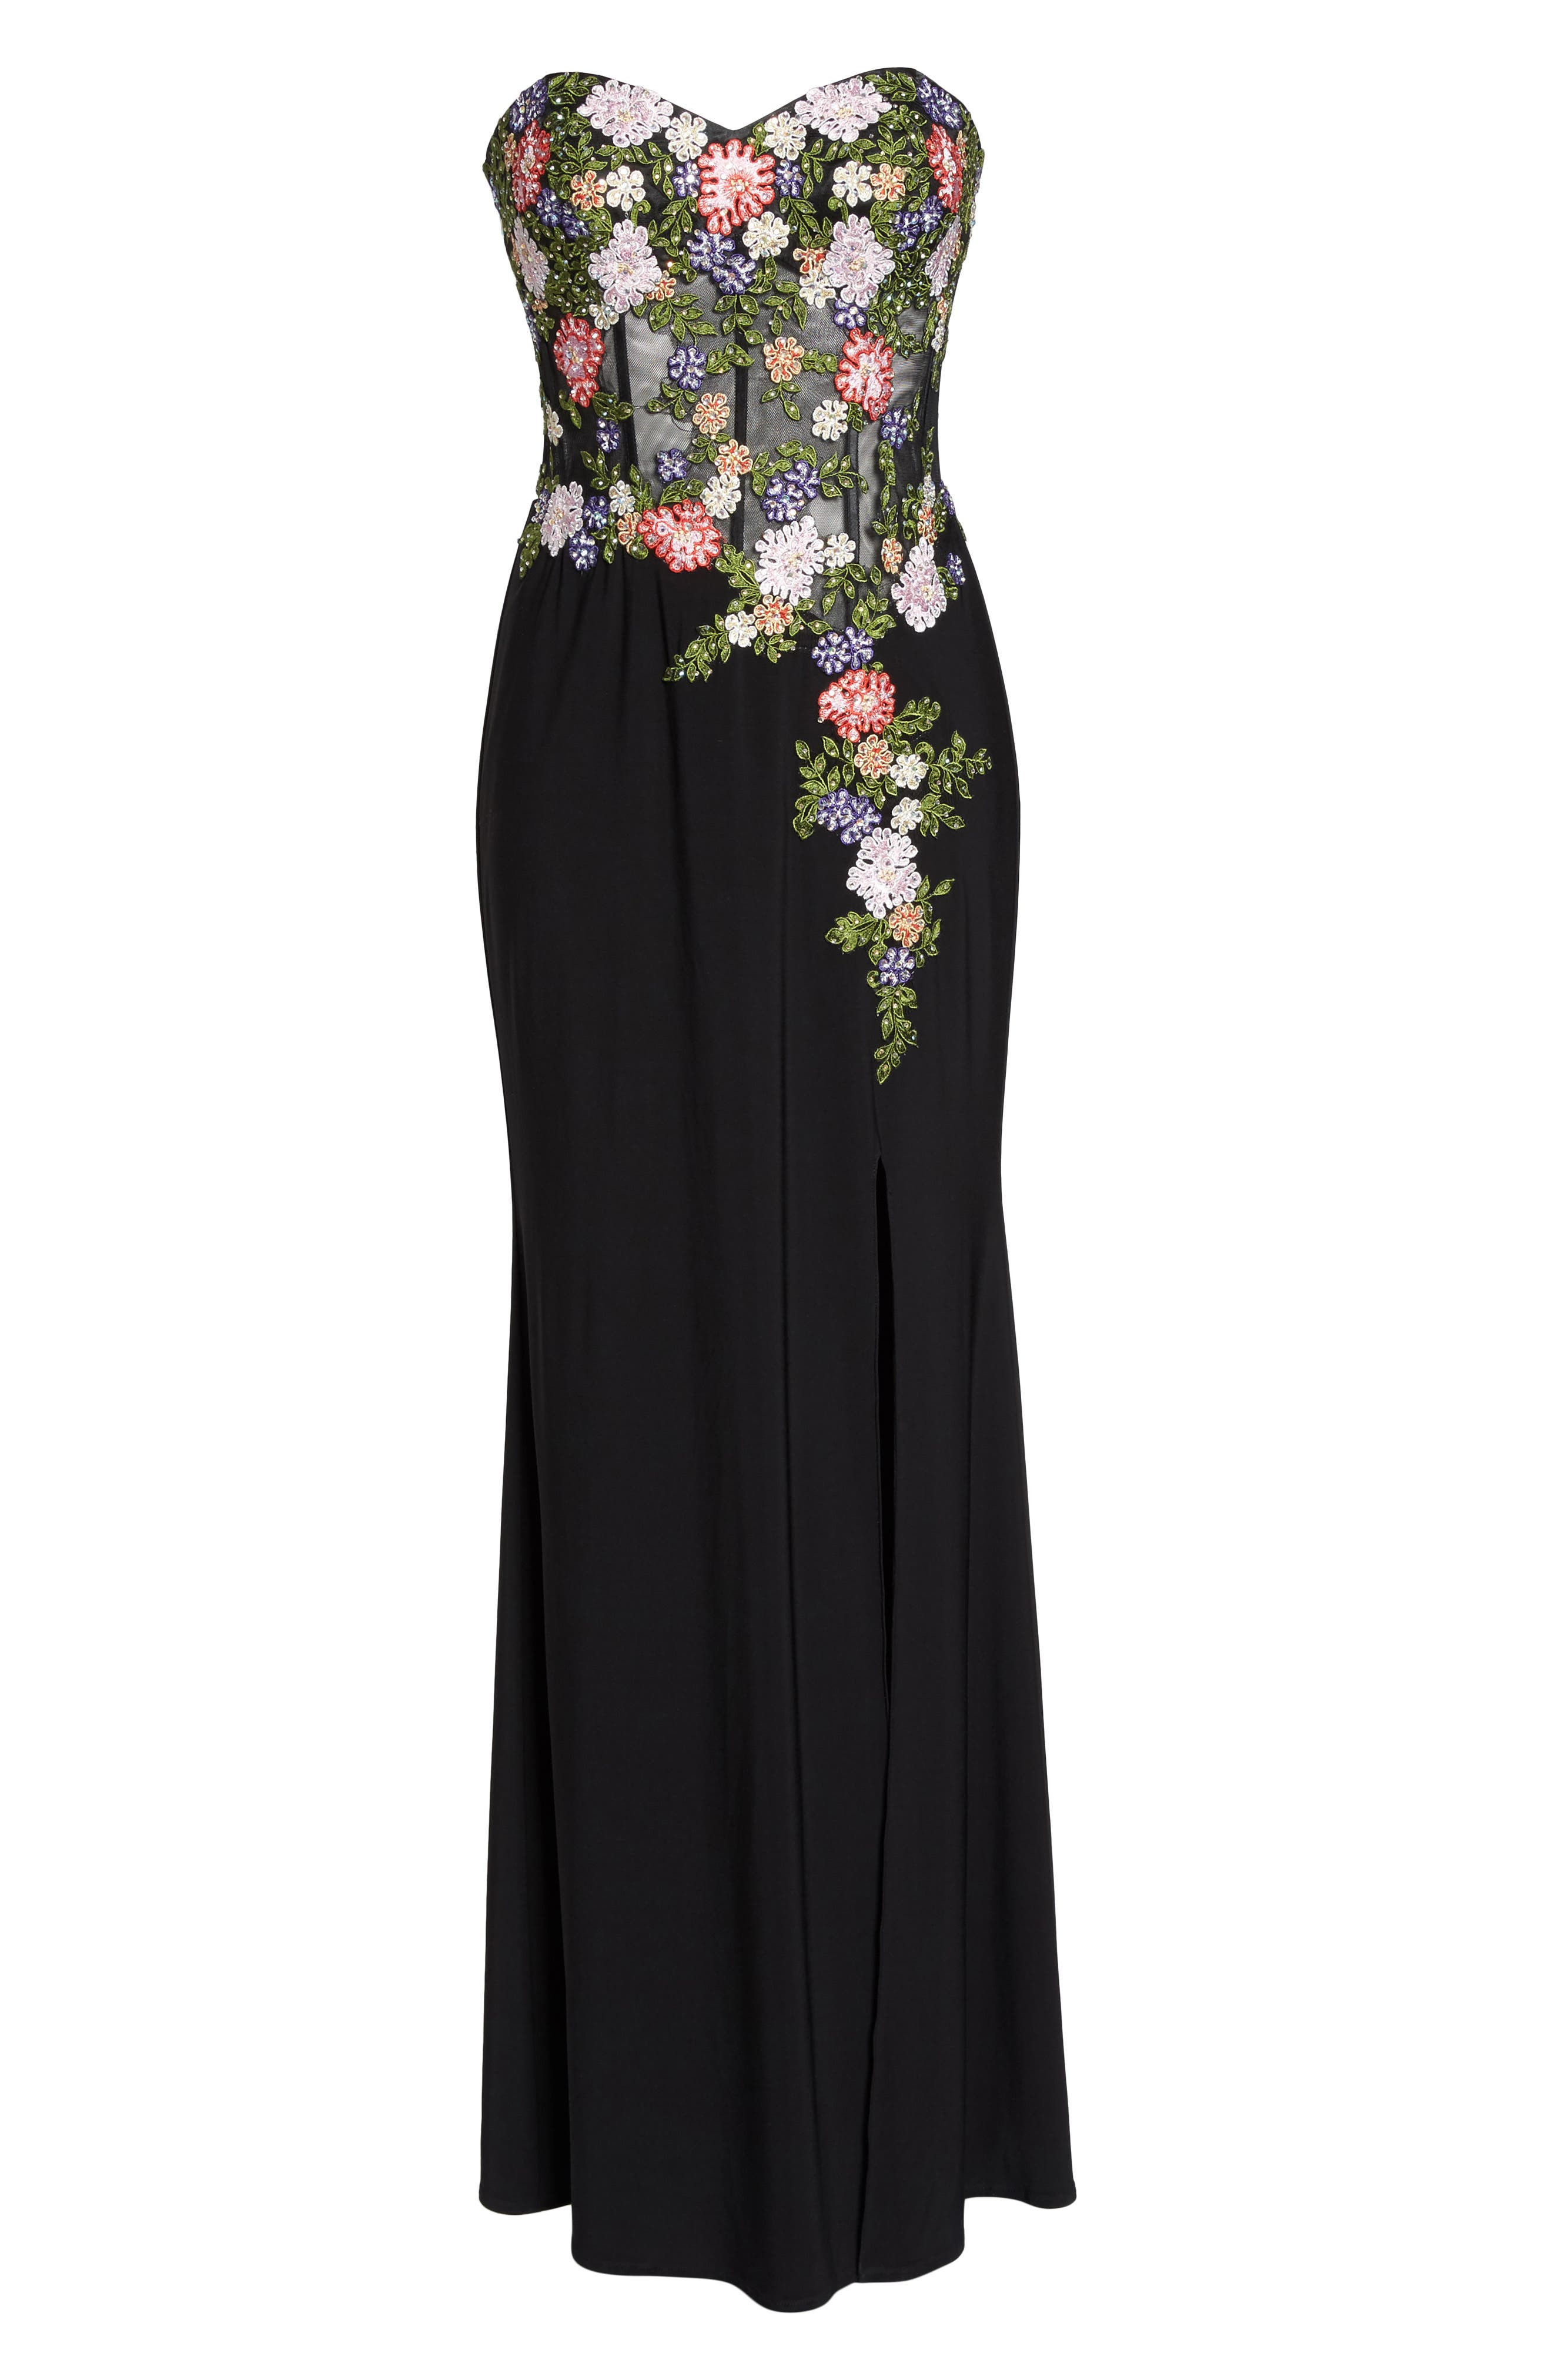 Embroidered Strapless Gown,                             Alternate thumbnail 6, color,                             Black/ Multi